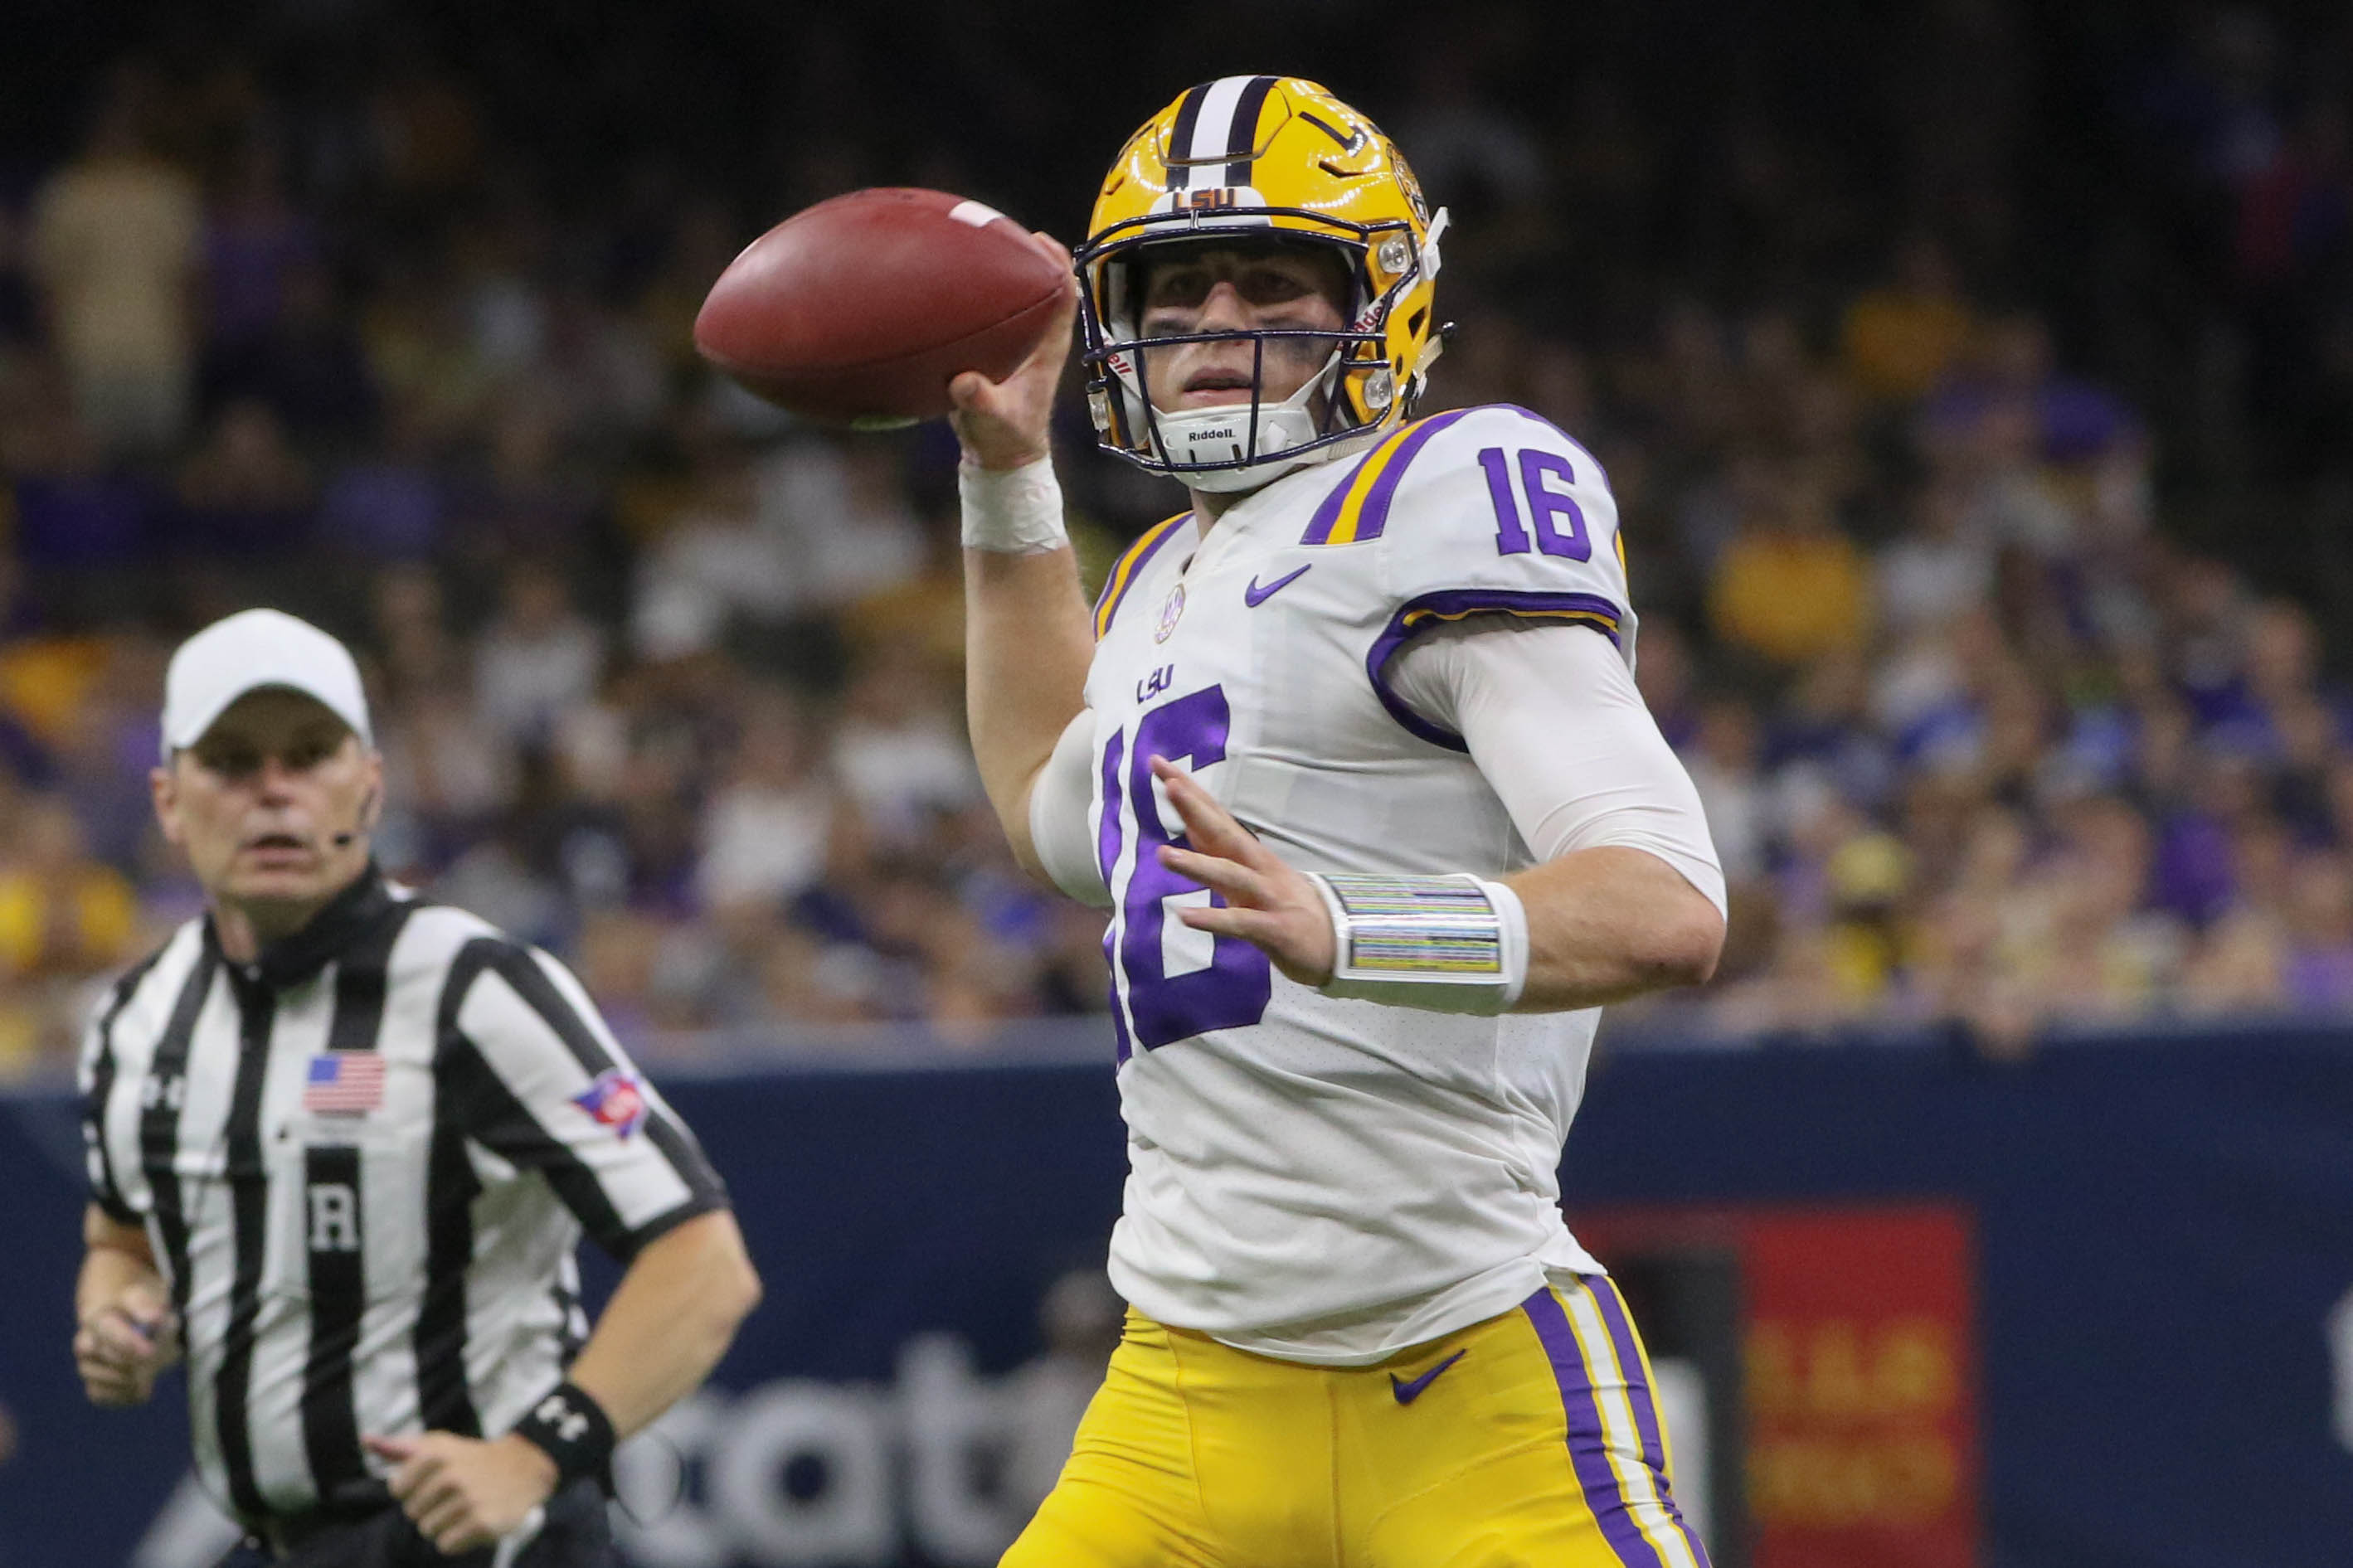 Bulldogs beat down No. 12 LSU 37-7